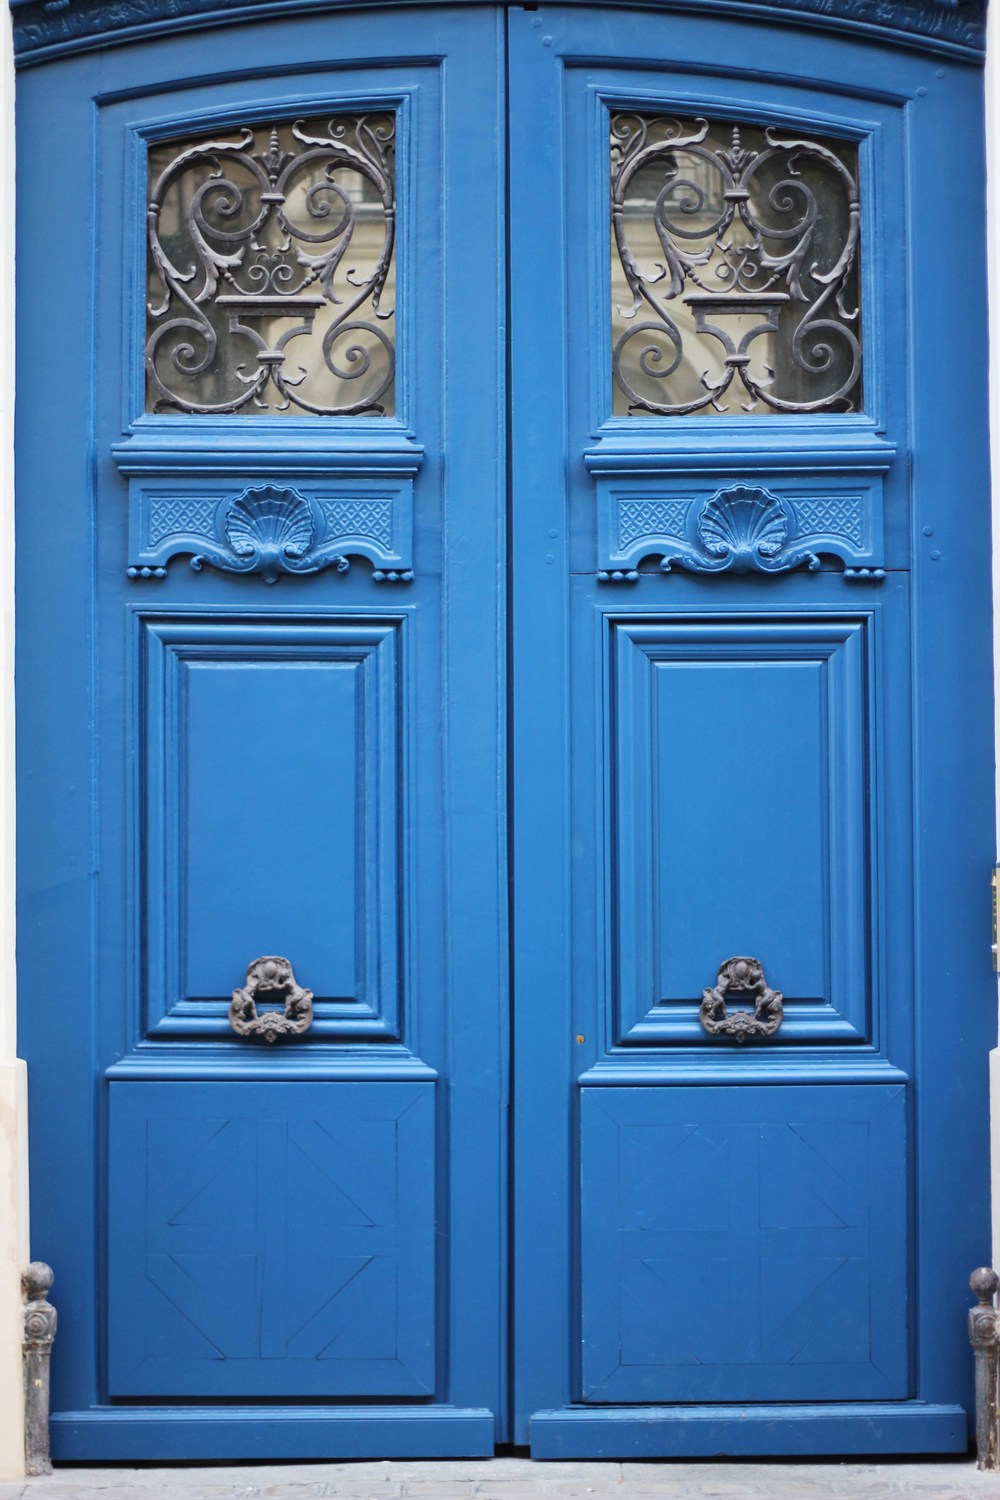 paris_blue_doors_france